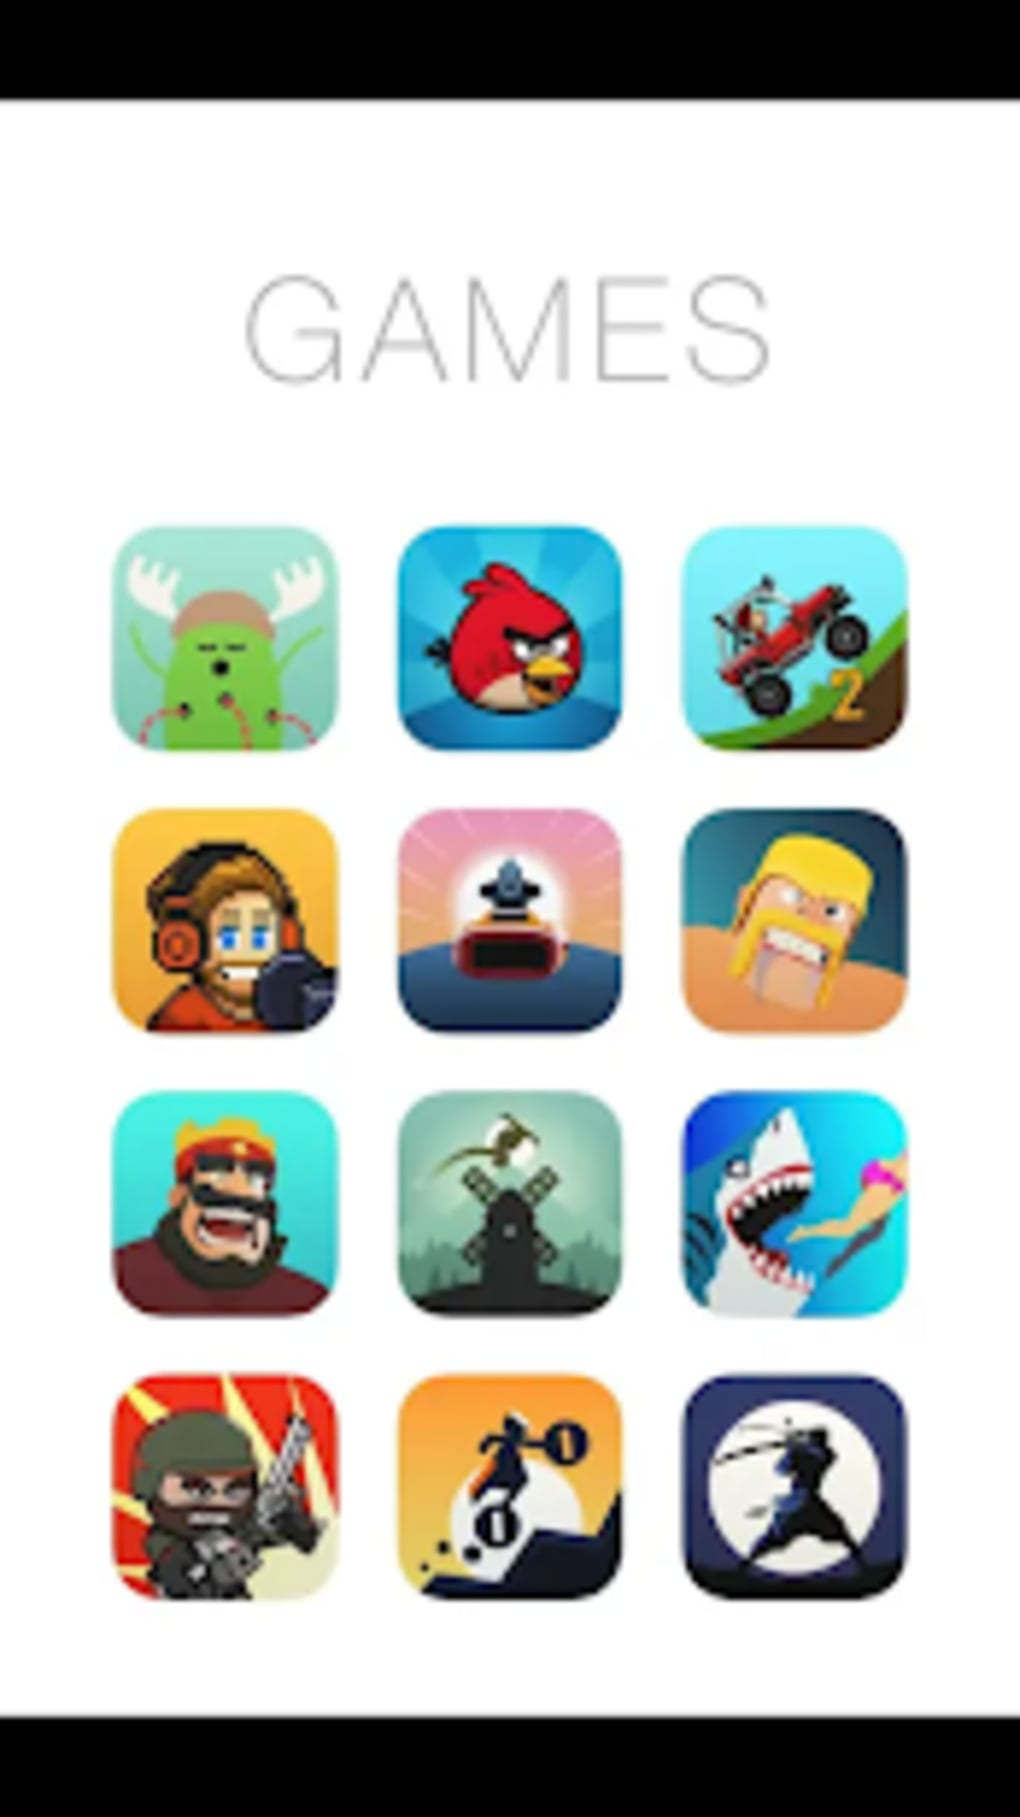 OS X 11 Icon Pack Iphone X for Android - Download